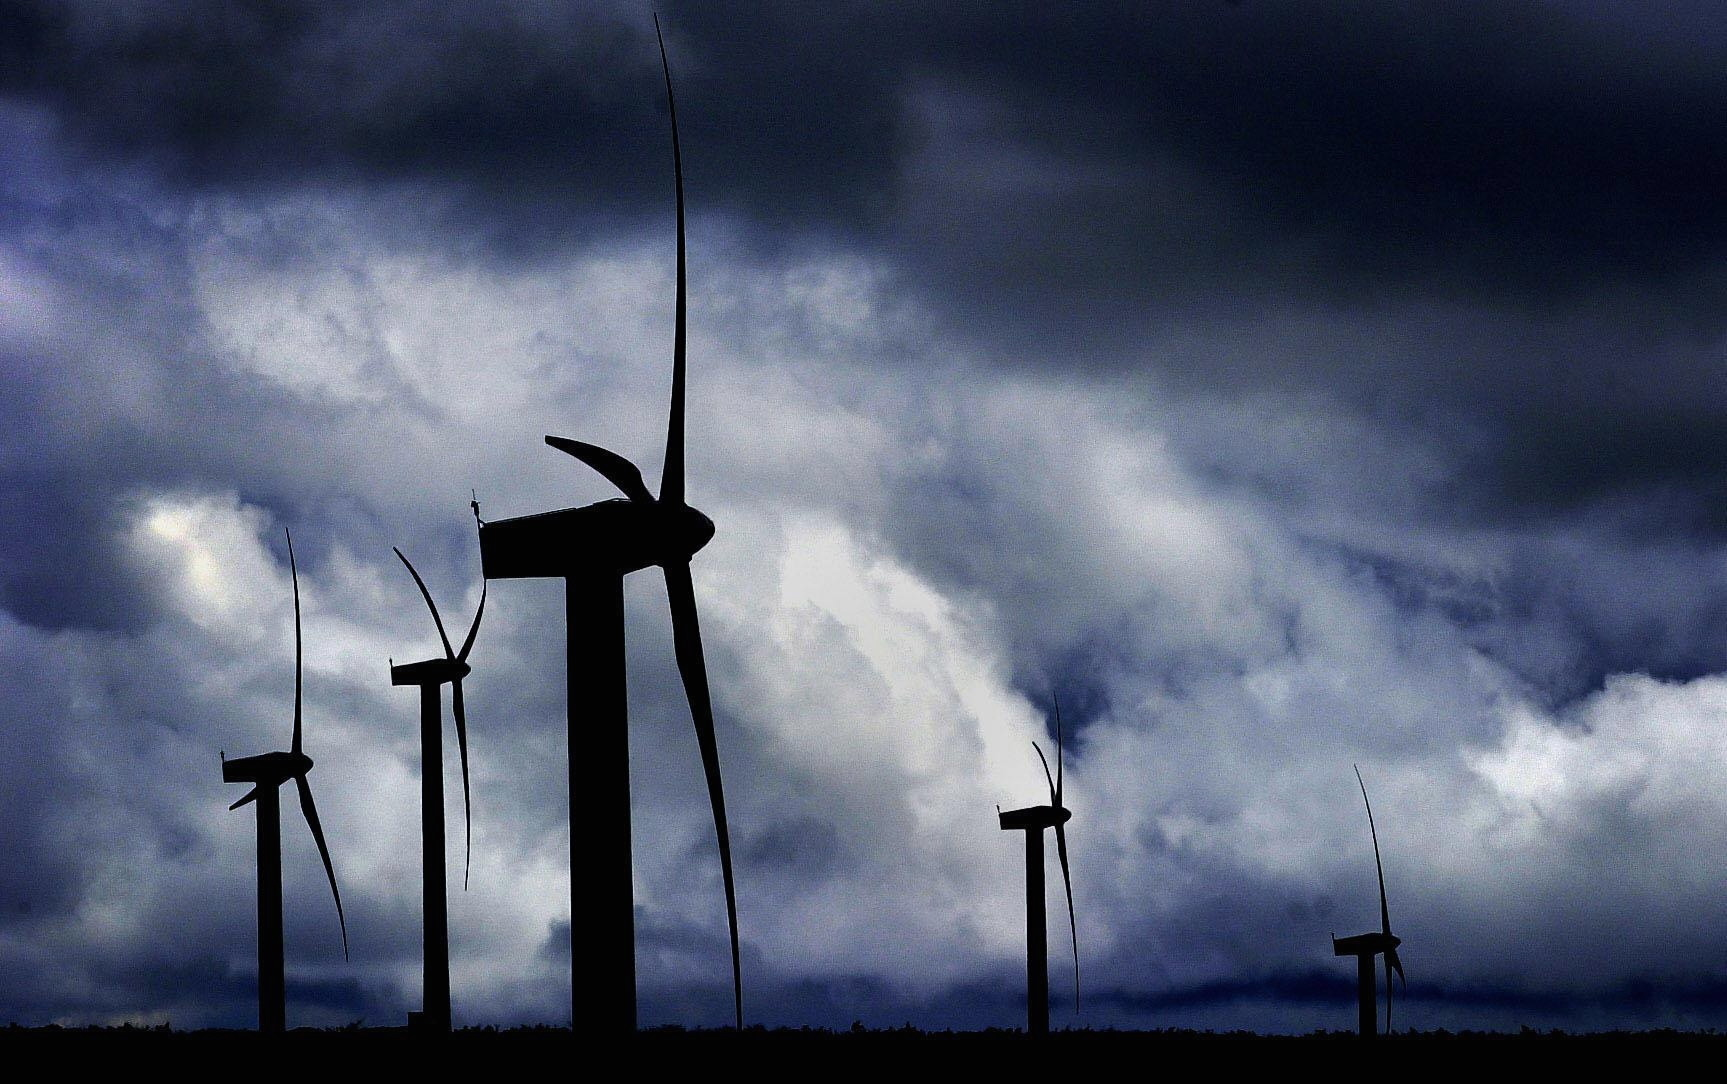 Pioneering Orkney energy project offers glimpse of fossil fuel-free future